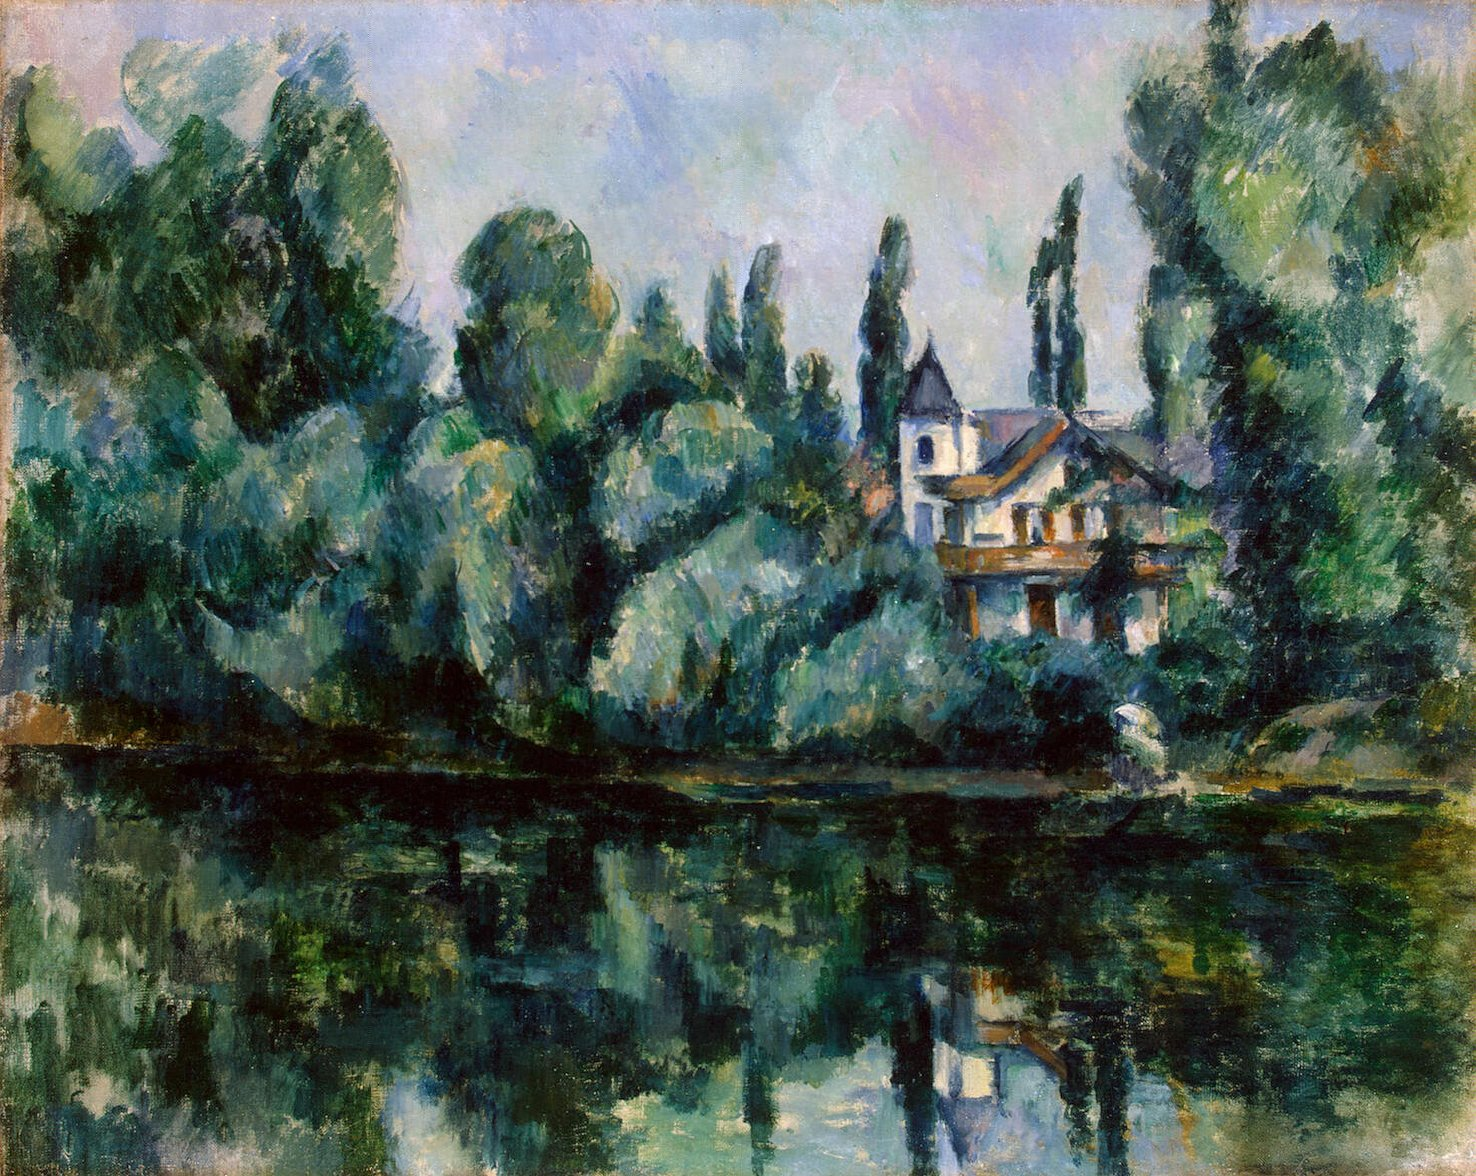 Banks of the Marne, by Cézanne